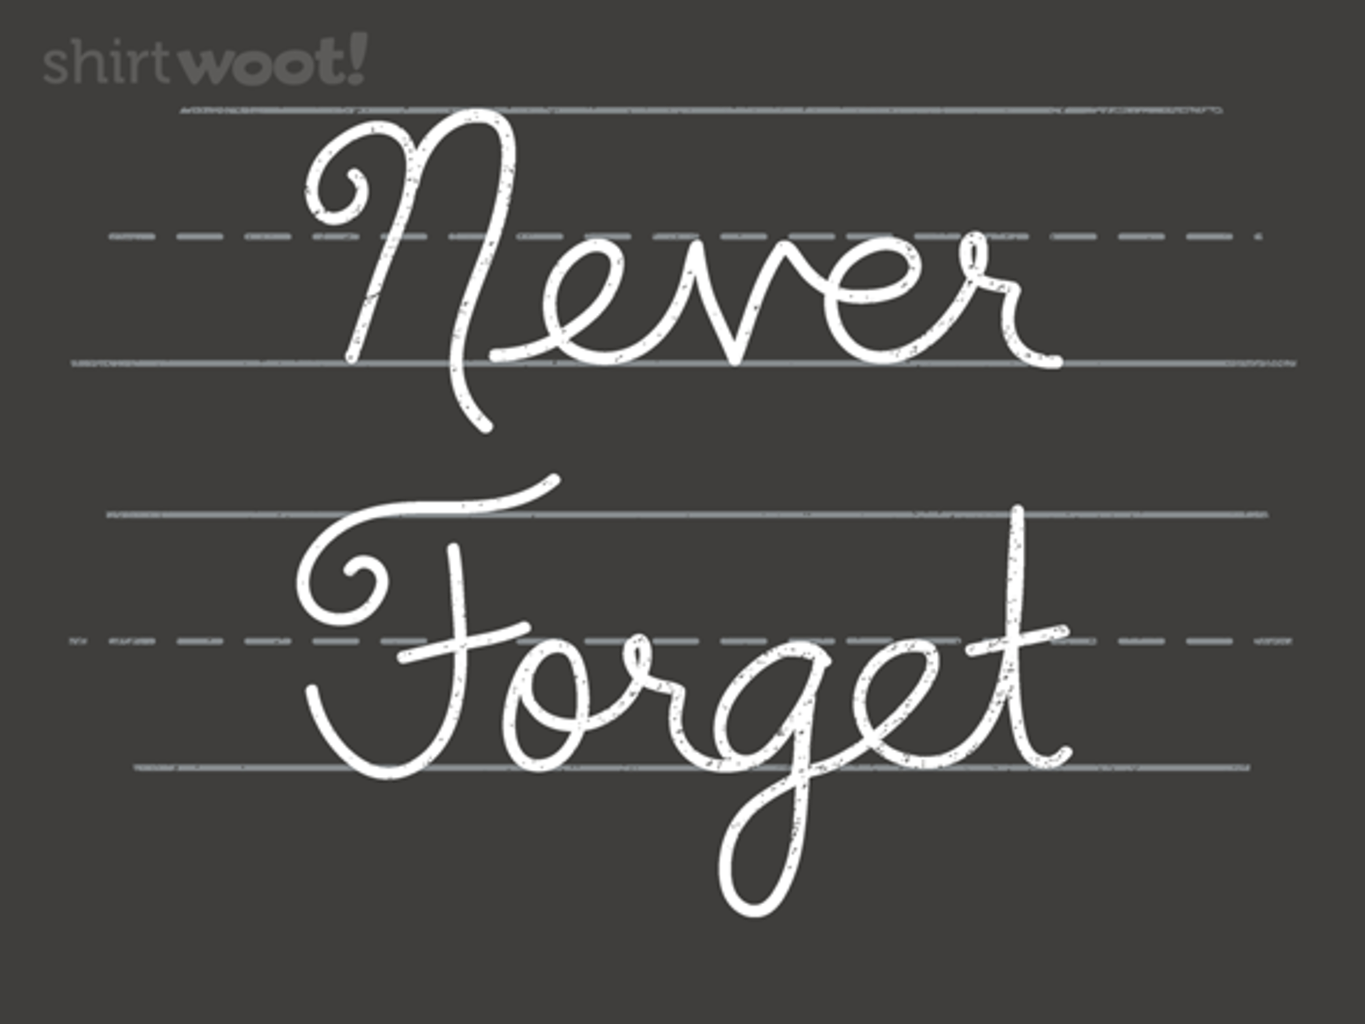 Woot!: Cursive - Never Forget